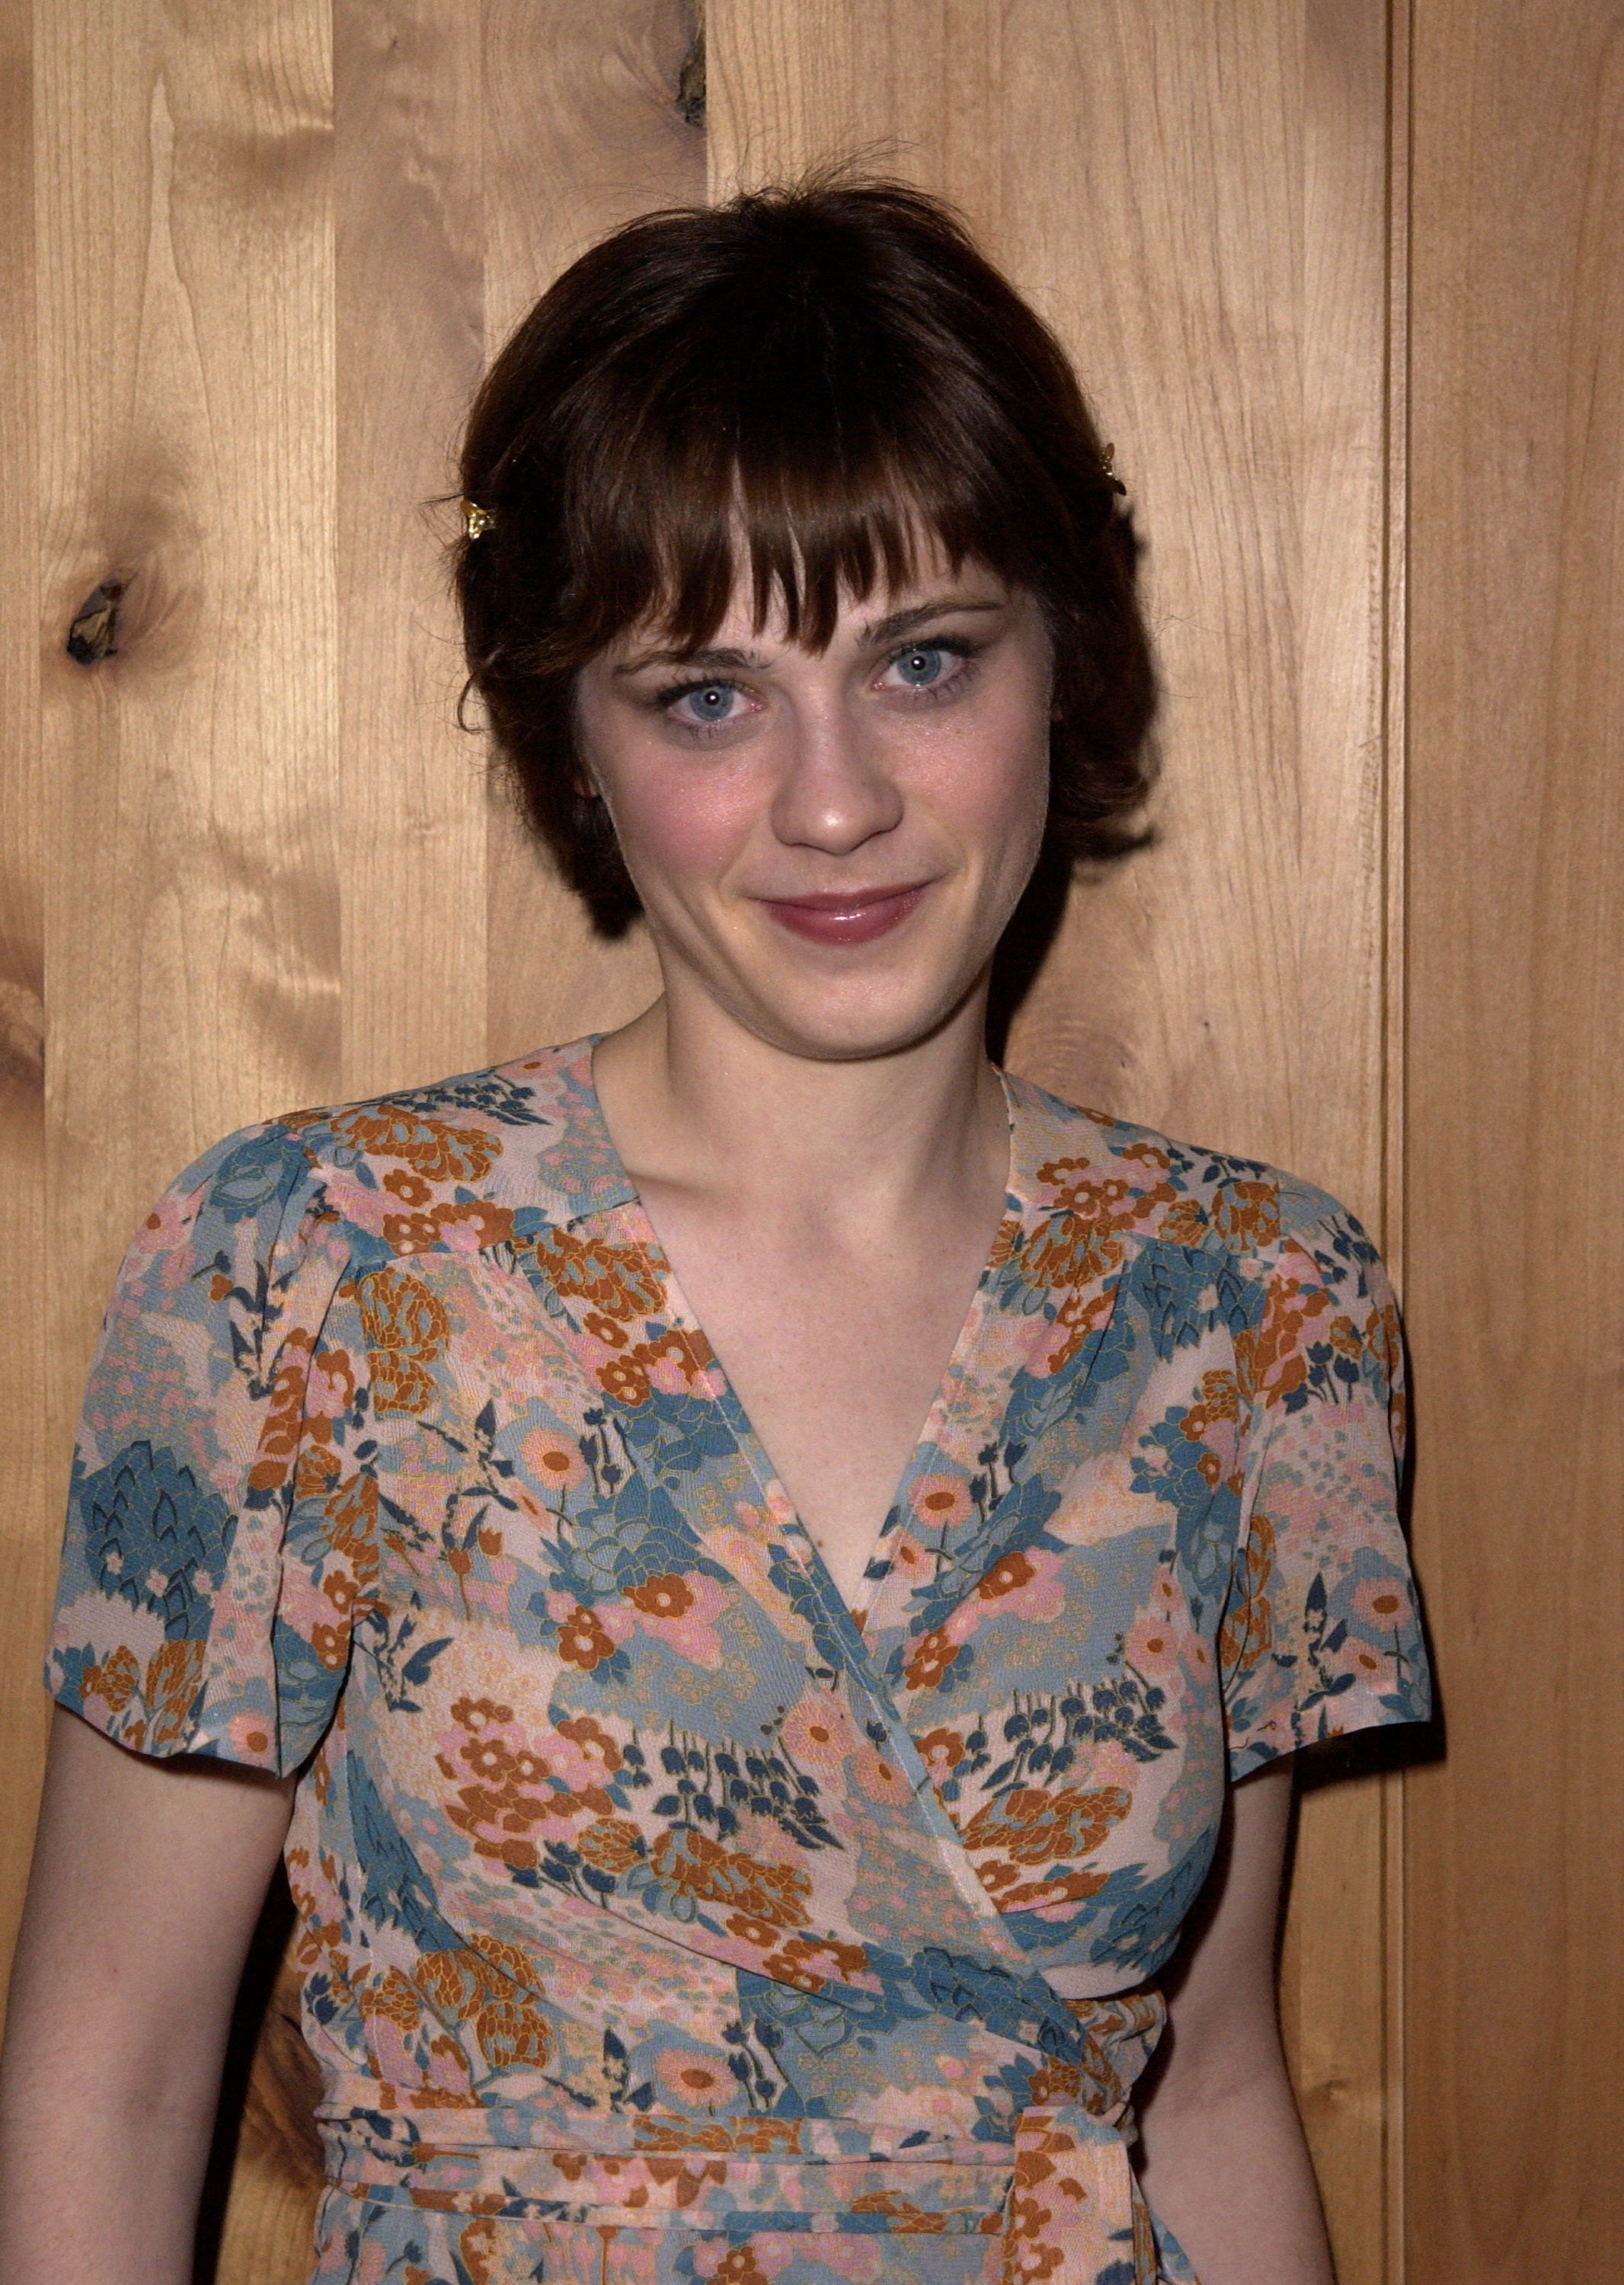 Remember When Zooey Deschanel Had The Cutest Pixie Cut In